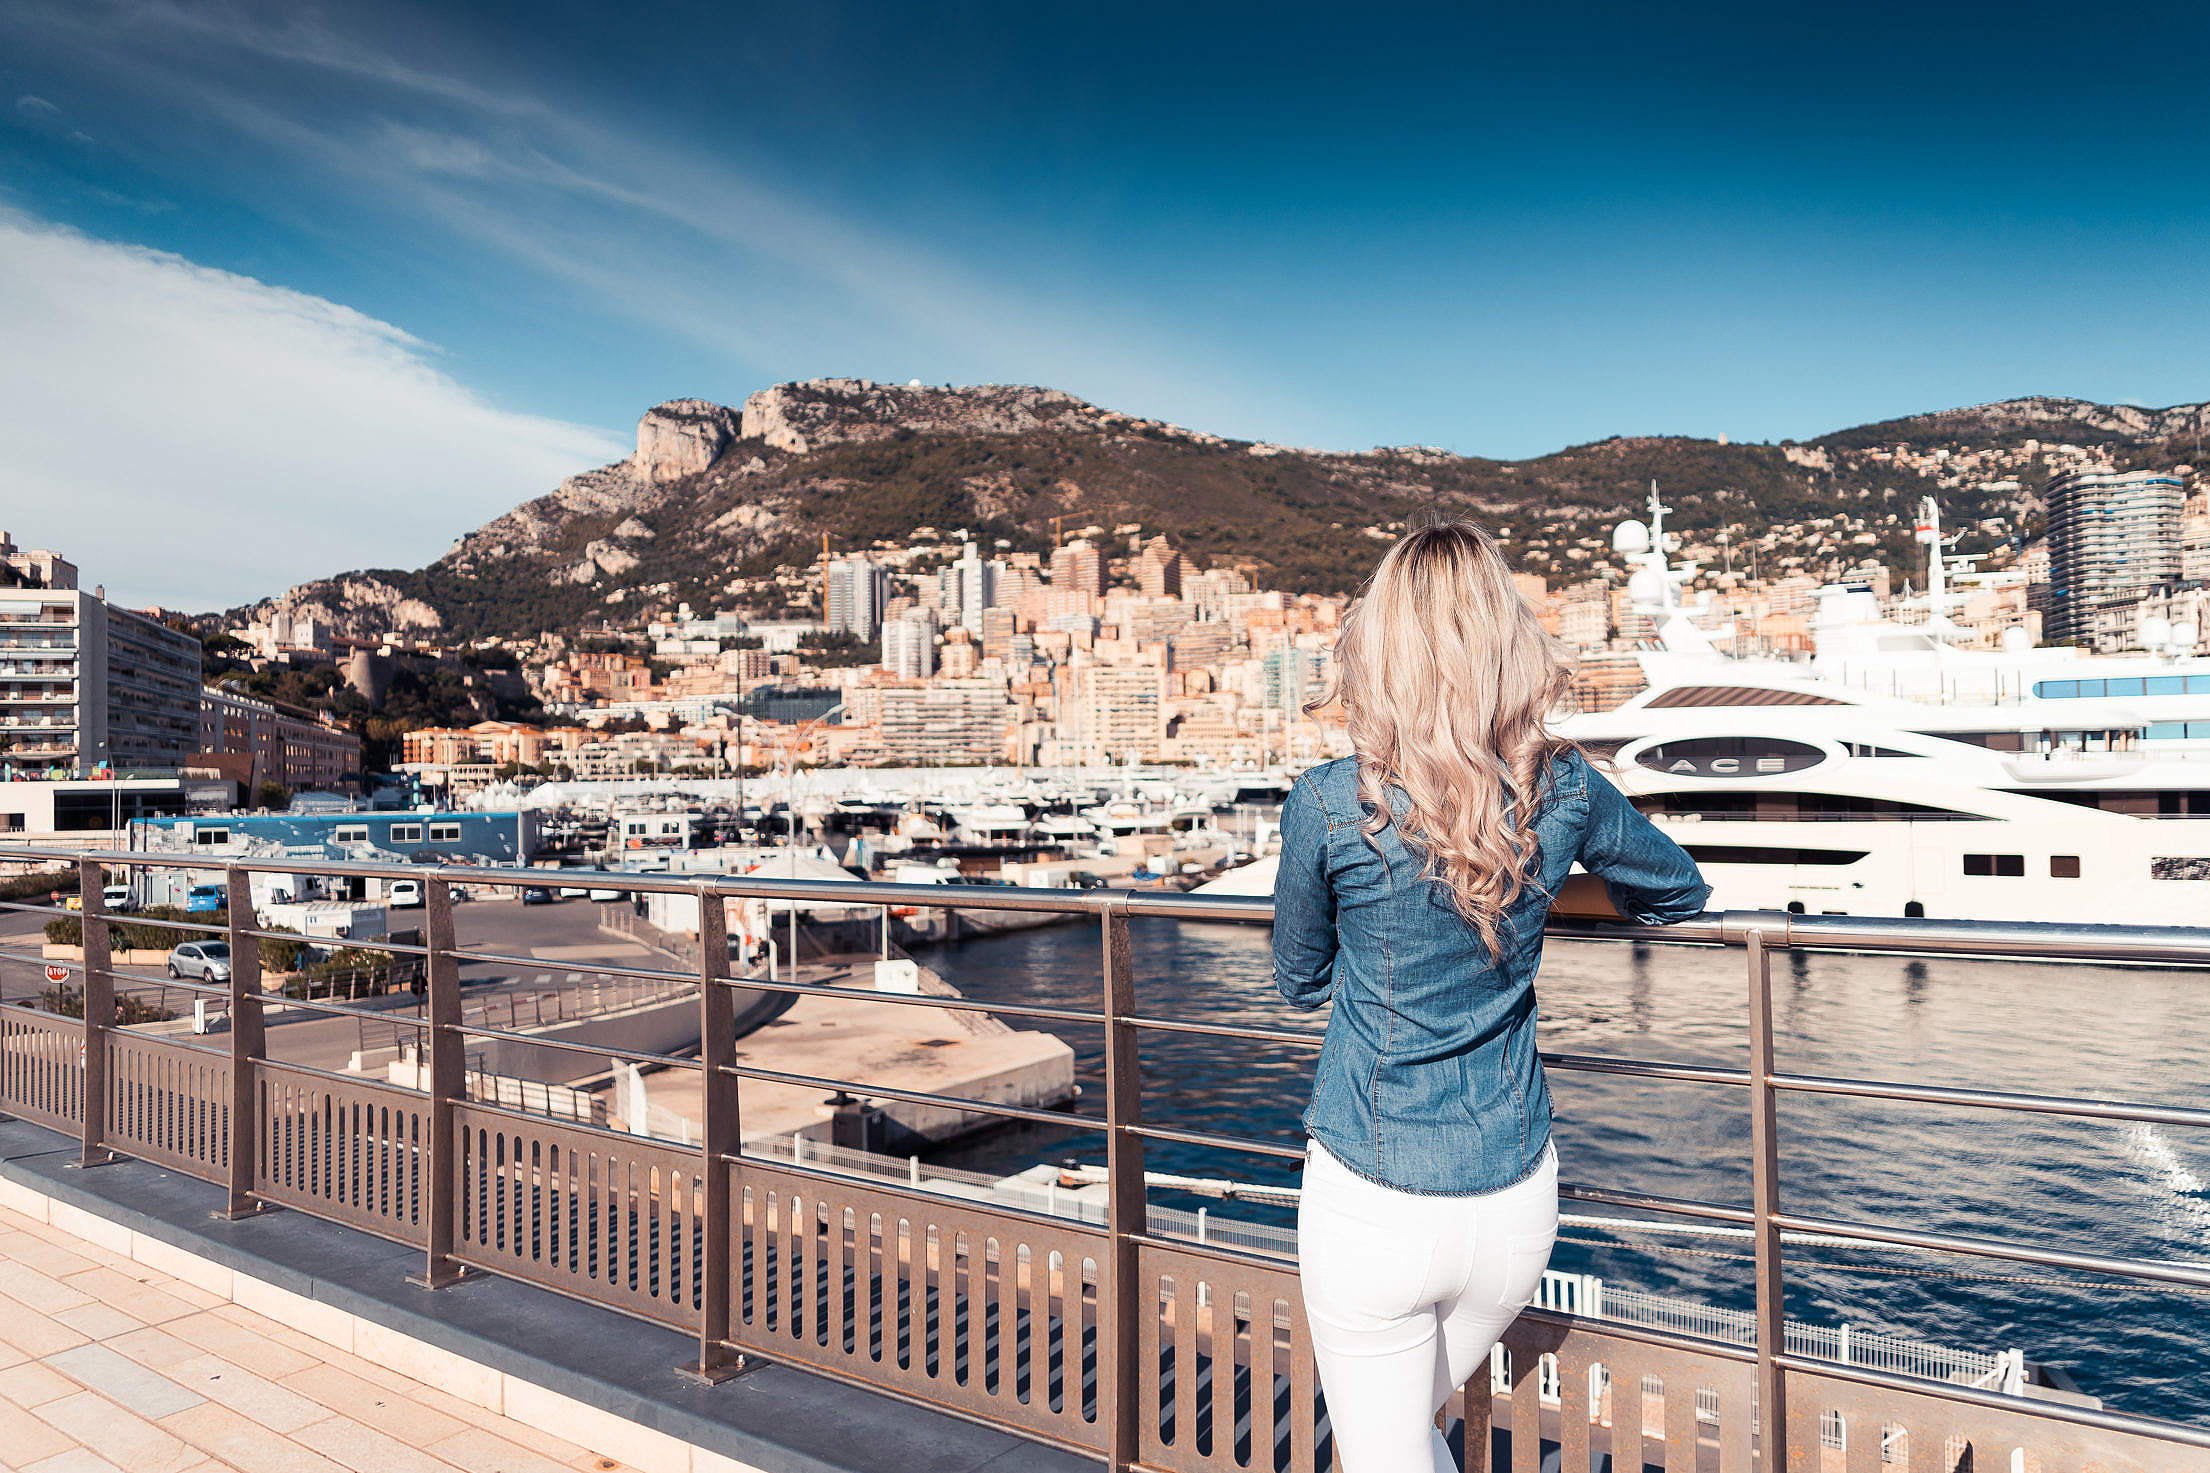 Woman Looking at Boats in Port of Monaco Harbor Free Stock Photo